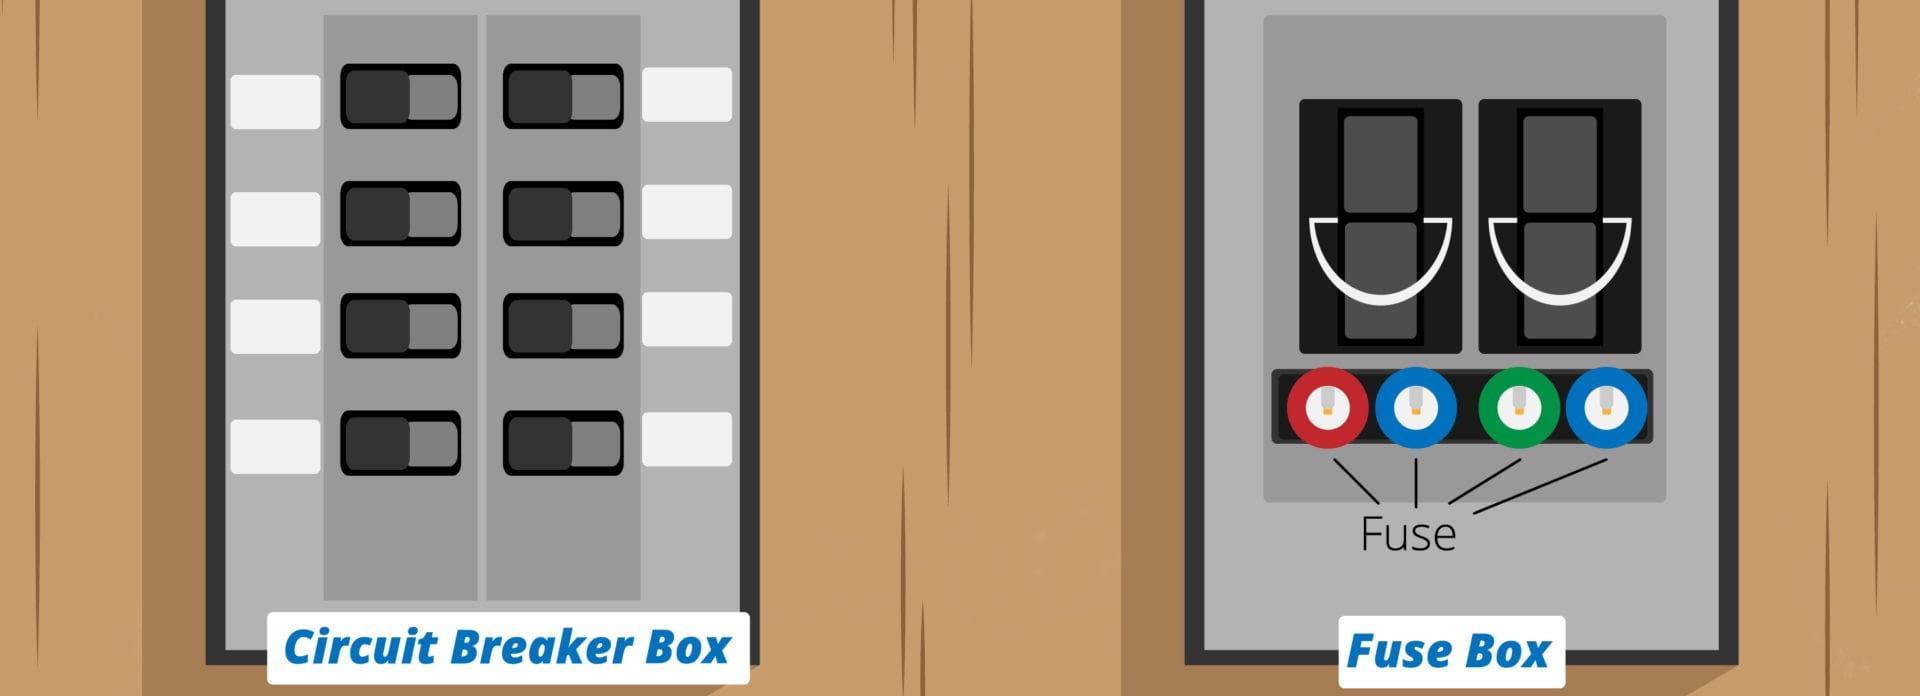 Cost Of Converting Fuse Box To Circuit Breakers